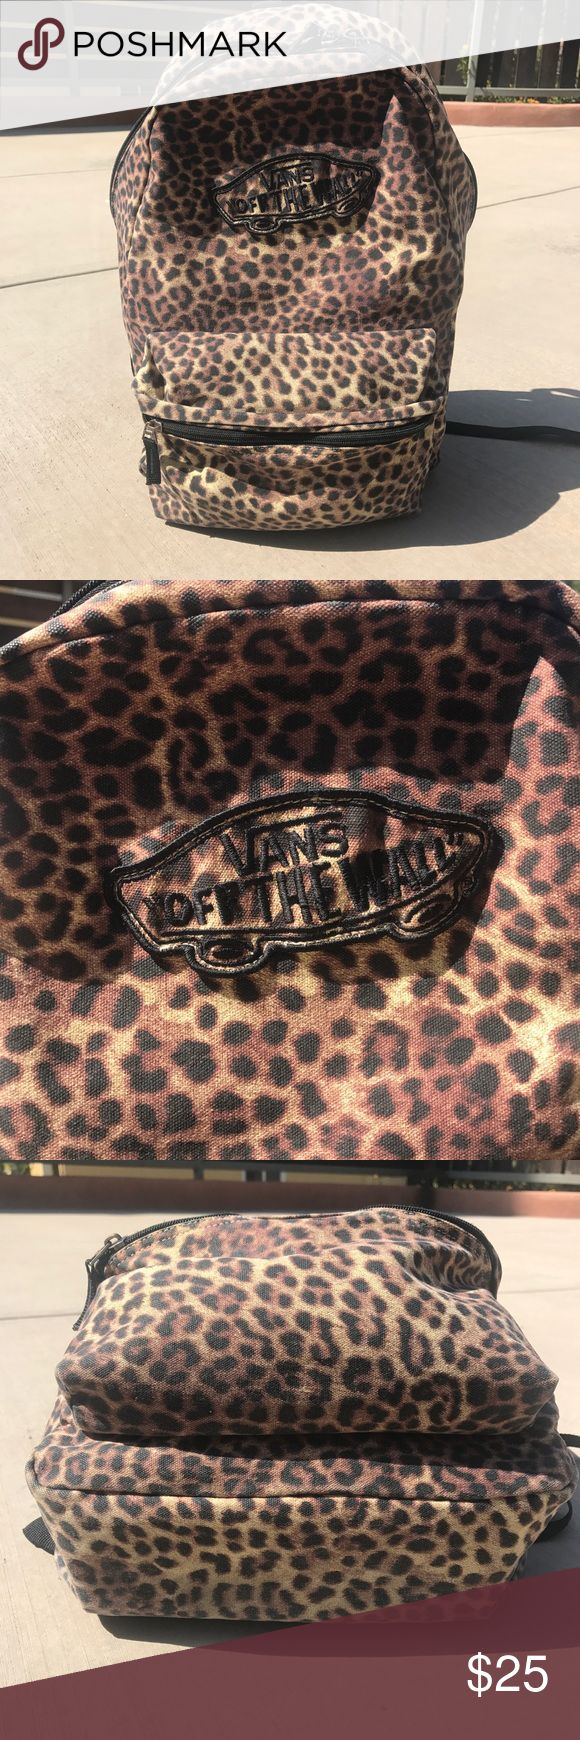 Vans Leopard Print Backpack Printed outer Adjustable padded straps Zip closure External pocket **Color along the edges and seams slightly worn from wear, but not obvious when worn** Vans Bags Backpacks